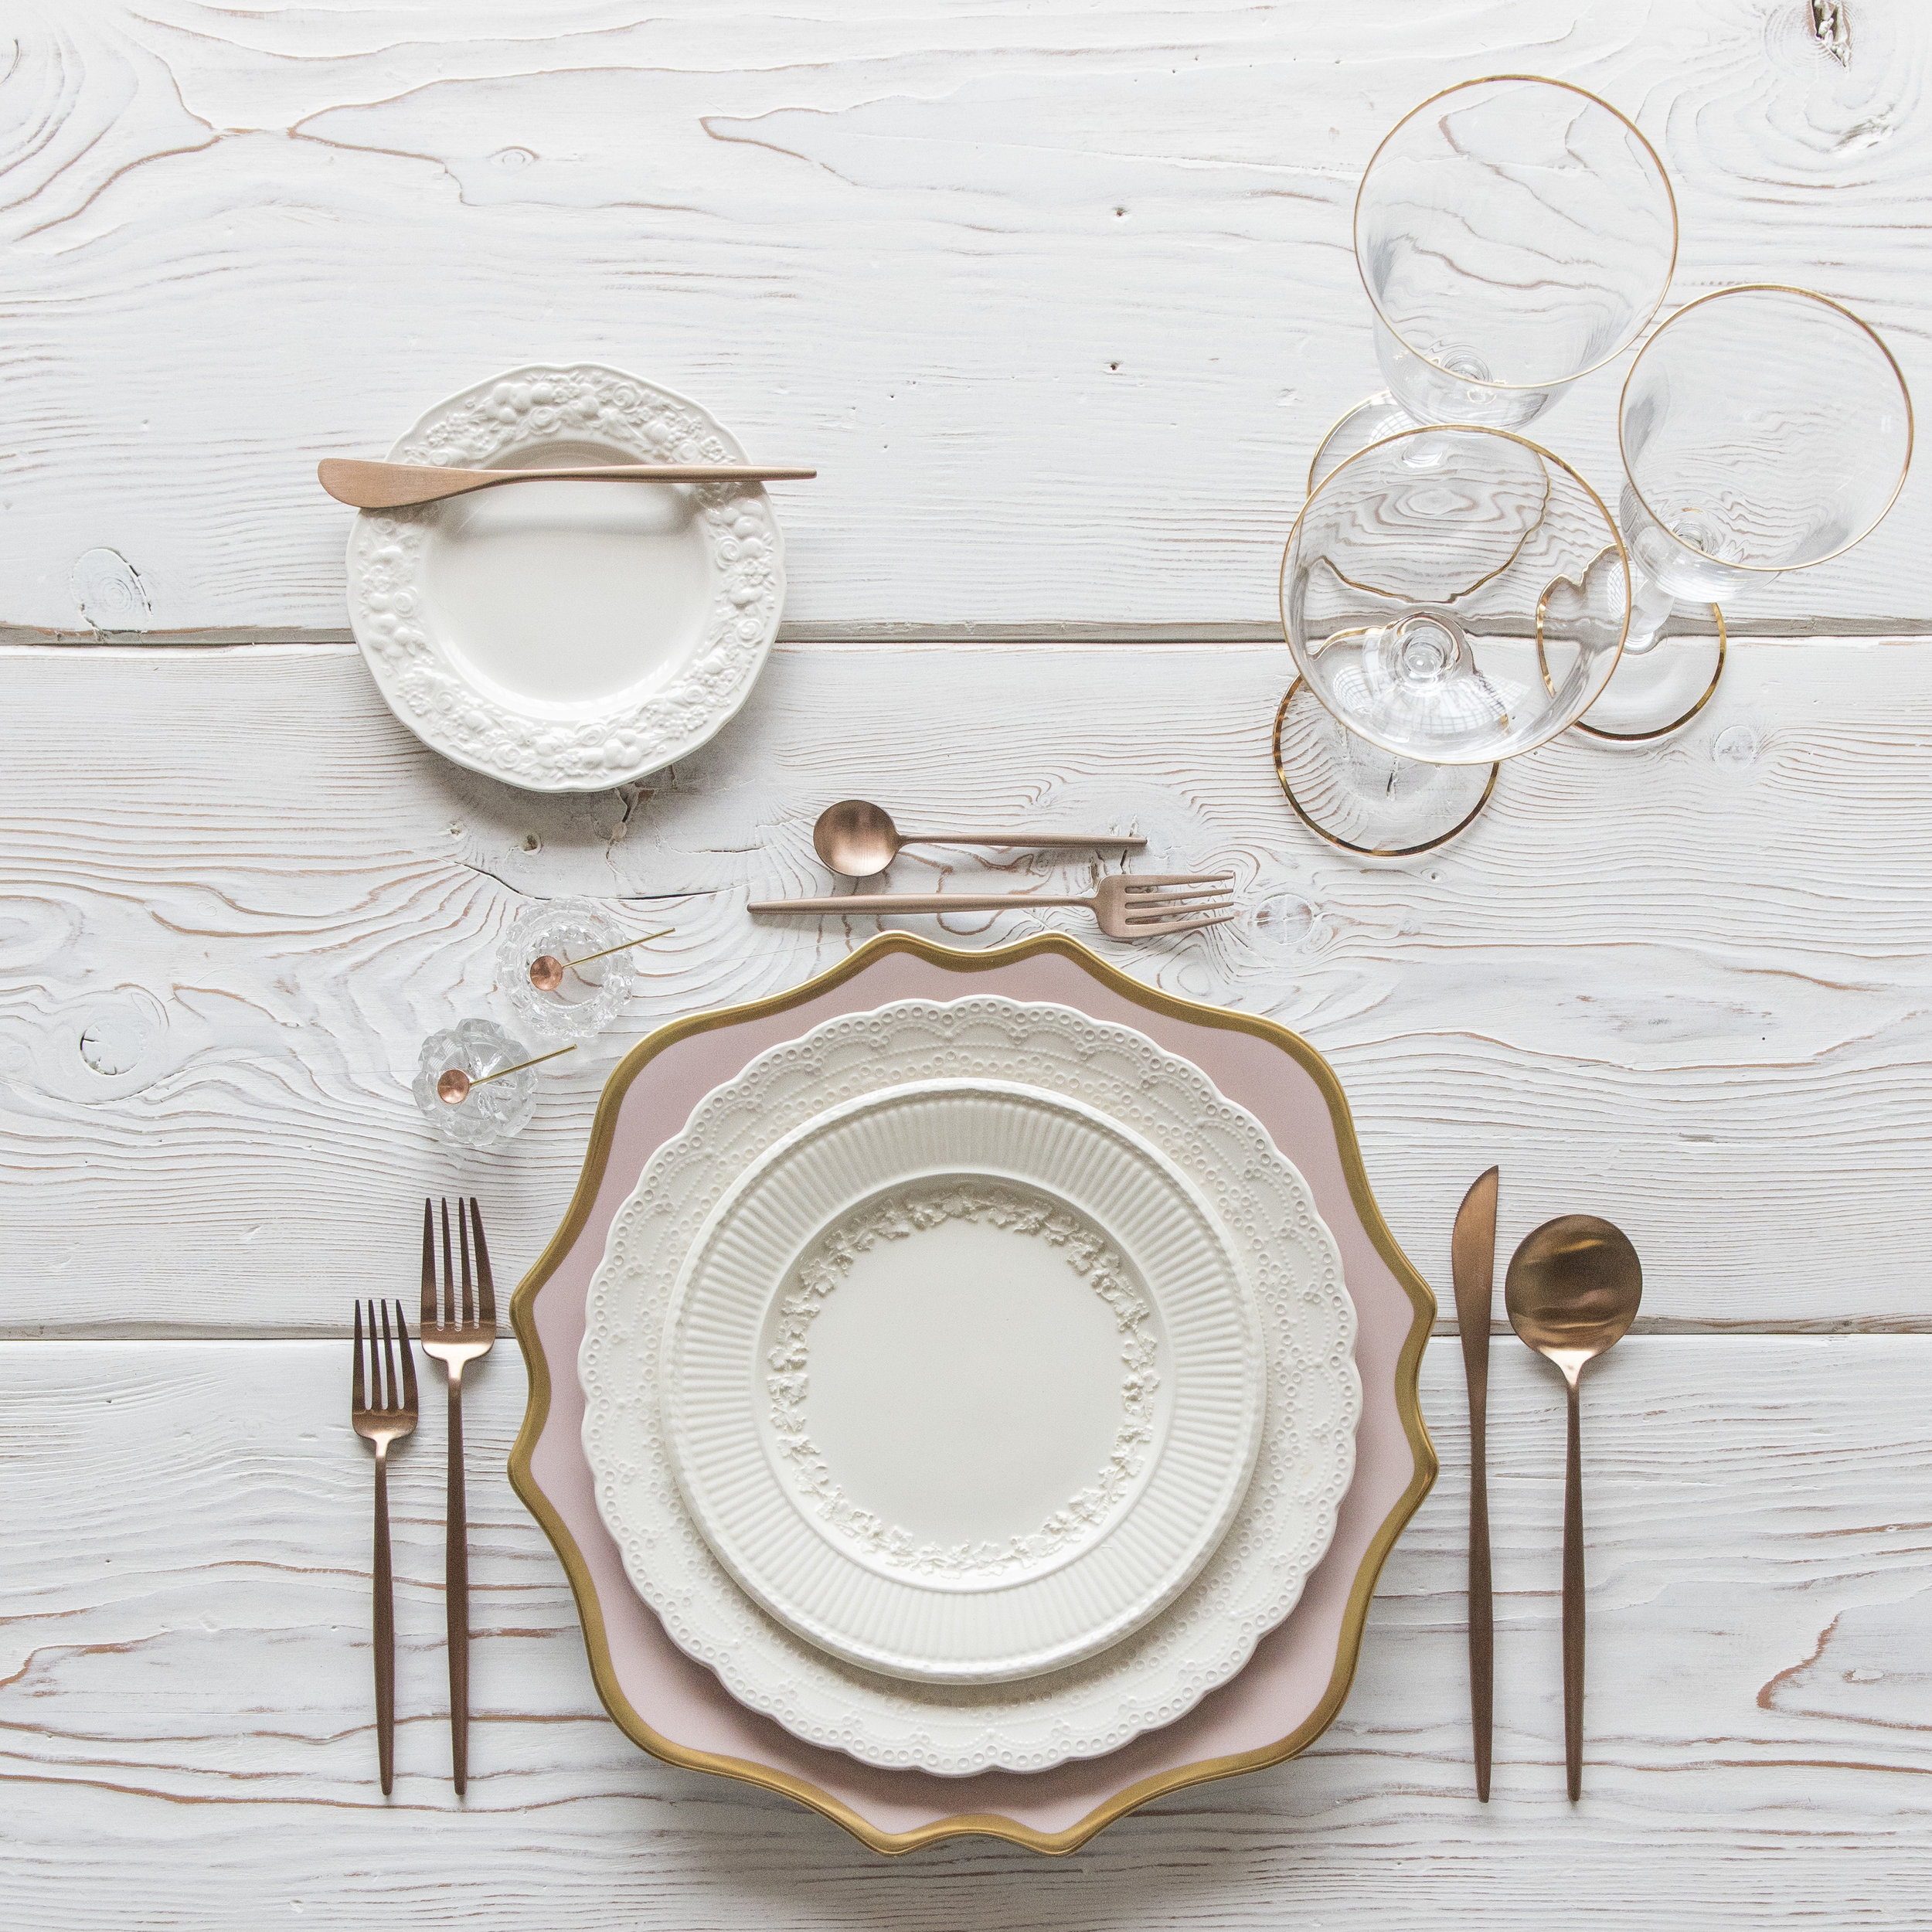 RENT: Anna Weatherley Chargers in Desert Rose/Gold + White Collection Vintage China + Moon Flatware in Brushed Rose Gold + Chloe 24k Gold Rimmed Stemware + Bella 24k Gold Rimmed Stemware + Antique Crystal Salt Cellars + Tiny Gold/Copper Spoons  SHOP:Moon Flatware in Brushed Rose Gold +Chloe 24k Gold Rimmed Stemware + Bella 24k Gold Rimmed Stemware